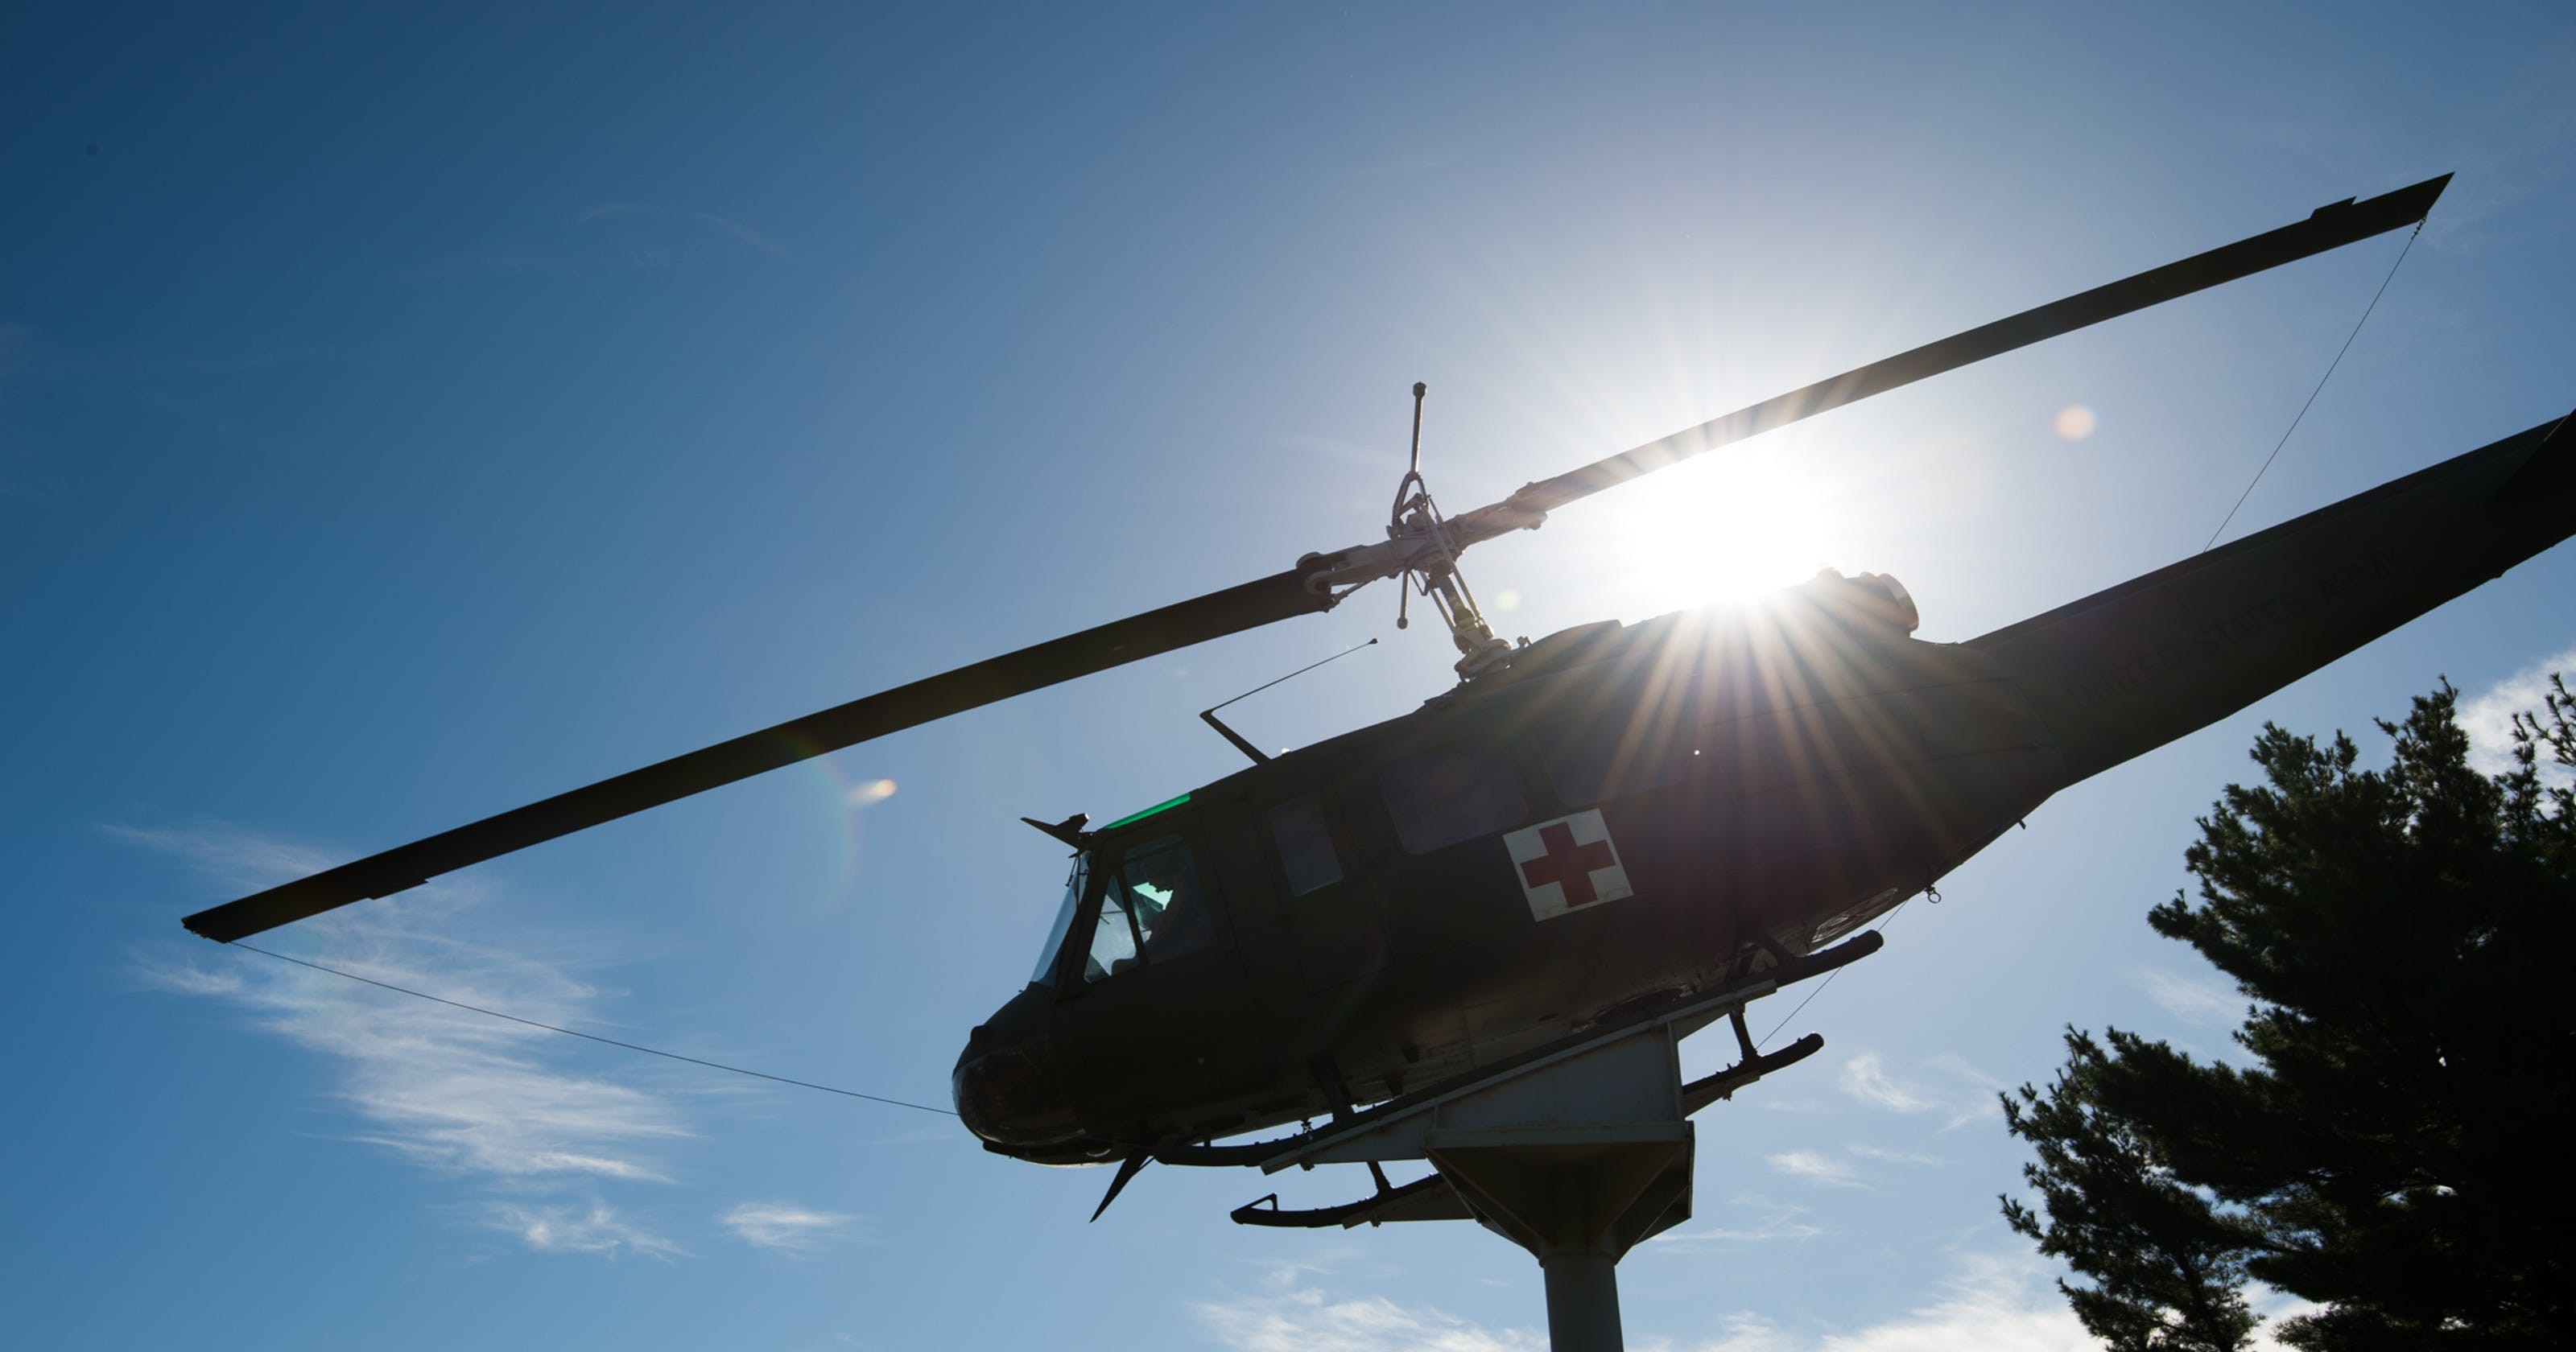 Huey pilots, crews honored for saving thousands of lives in Vietnam